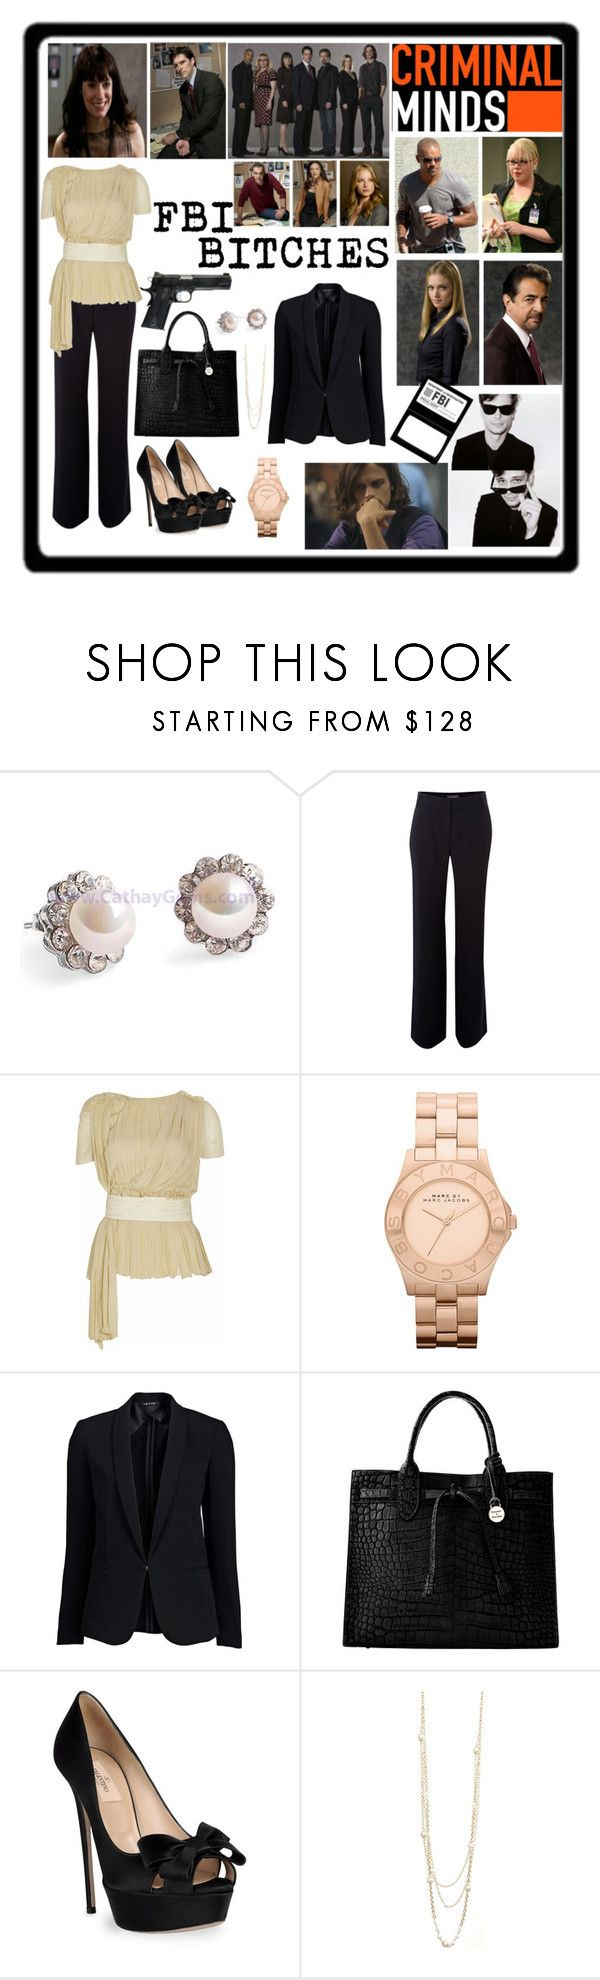 """""""I LOVE CRIMINAL MINDS"""" by emily-redhead-extraordinaire ❤ liked on Polyvore featuring Pied a Terre, Chloé, Marc by Marc Jacobs, rag & bone, Dooney & Bourke, Valentino, Rachel, TALLY WEiJL, oversized watches and dr reid"""